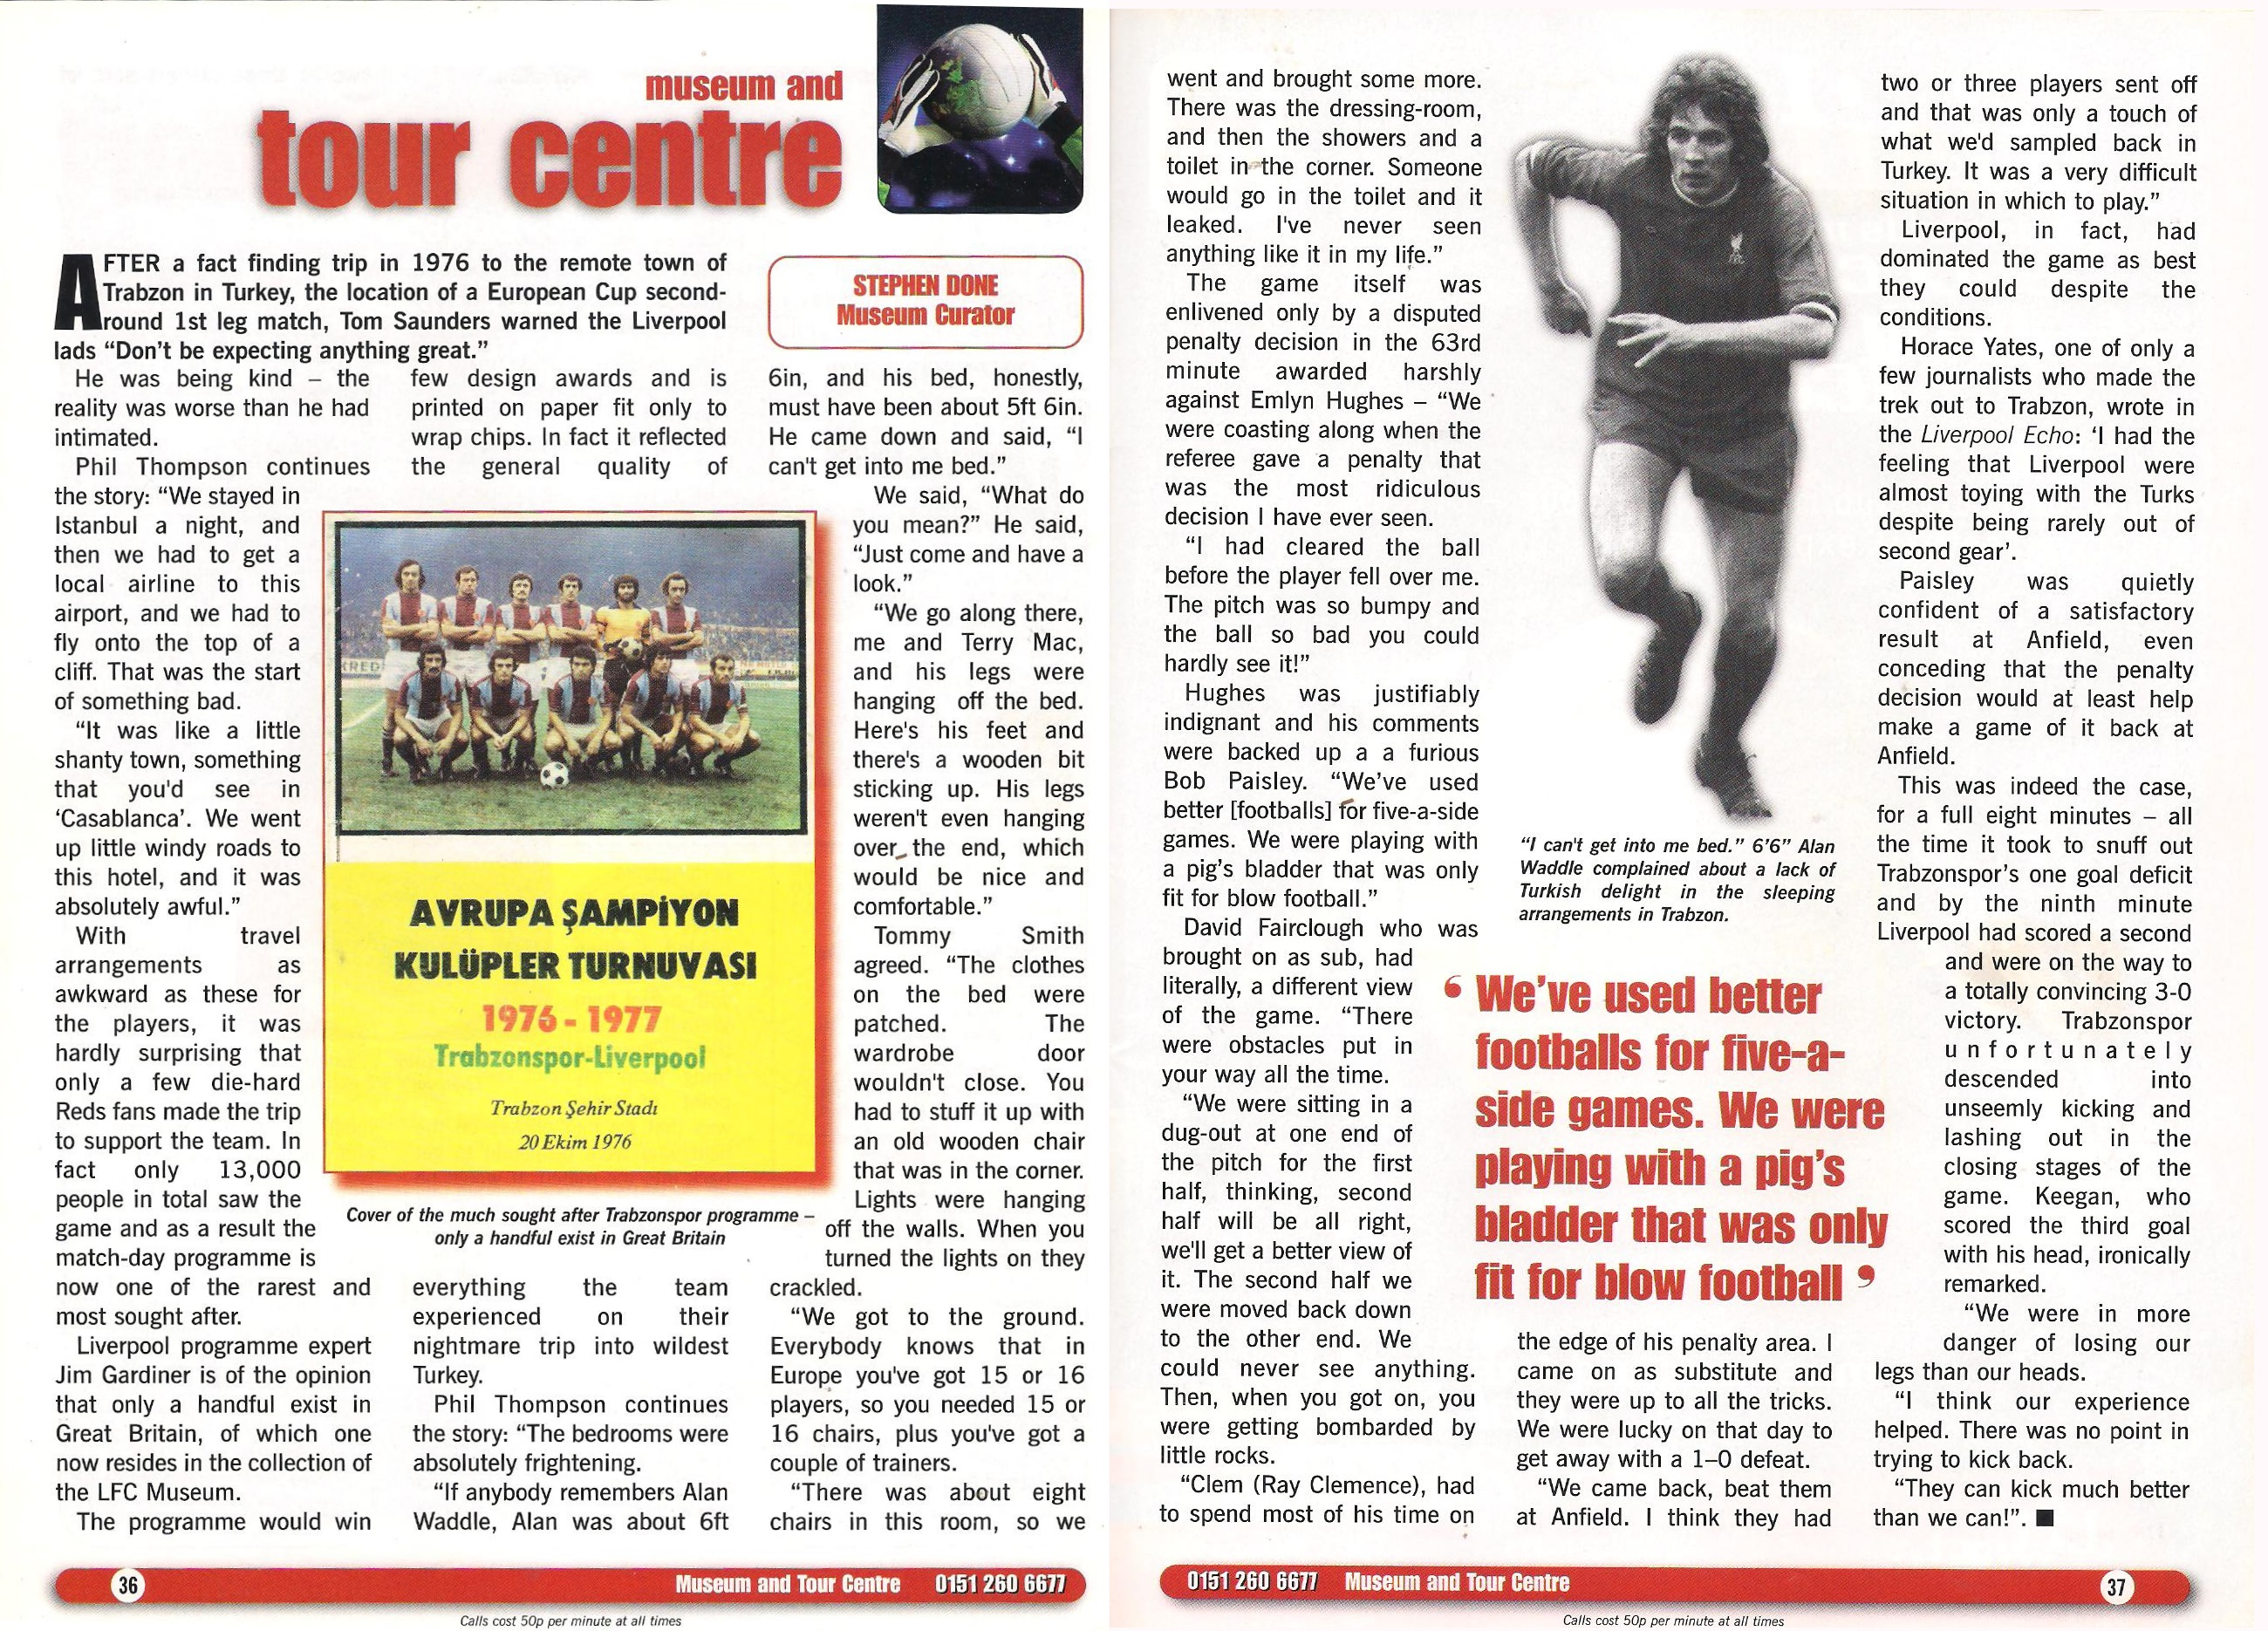 Stephen Done's column in Liverpool's match programme on Liverpool's trip to Trabzonspor